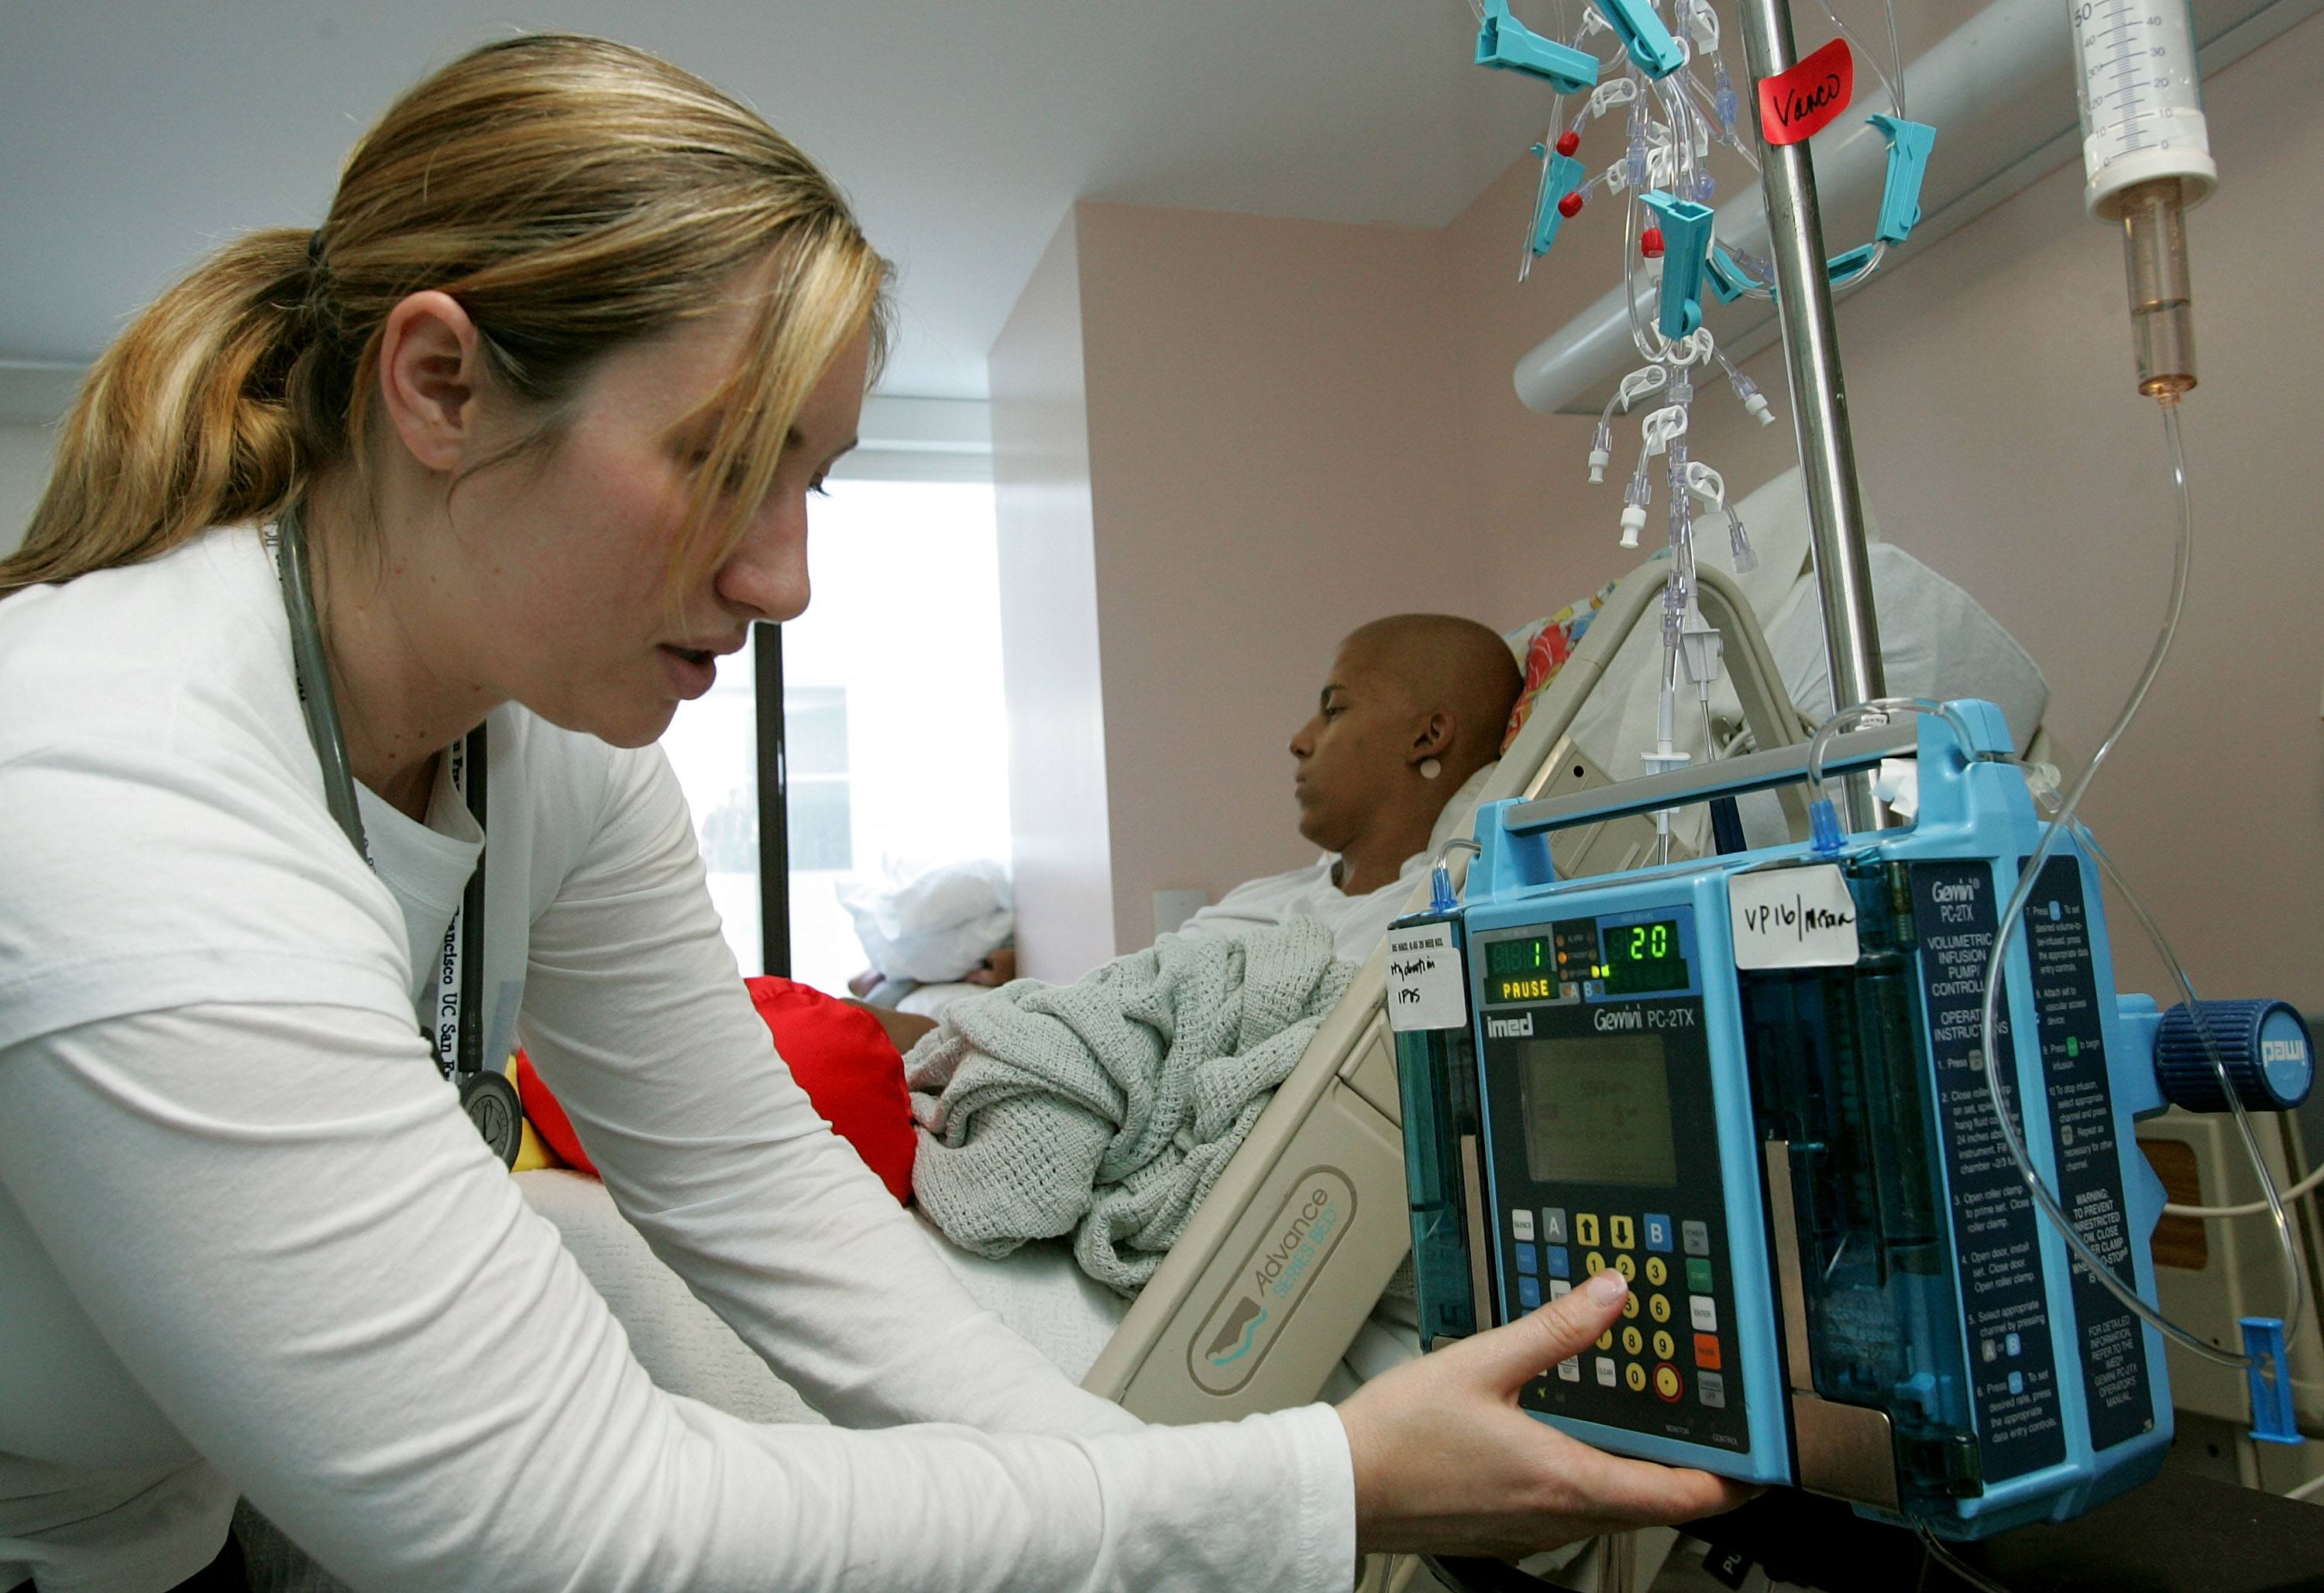 A nurse adjusts an IV drip machine